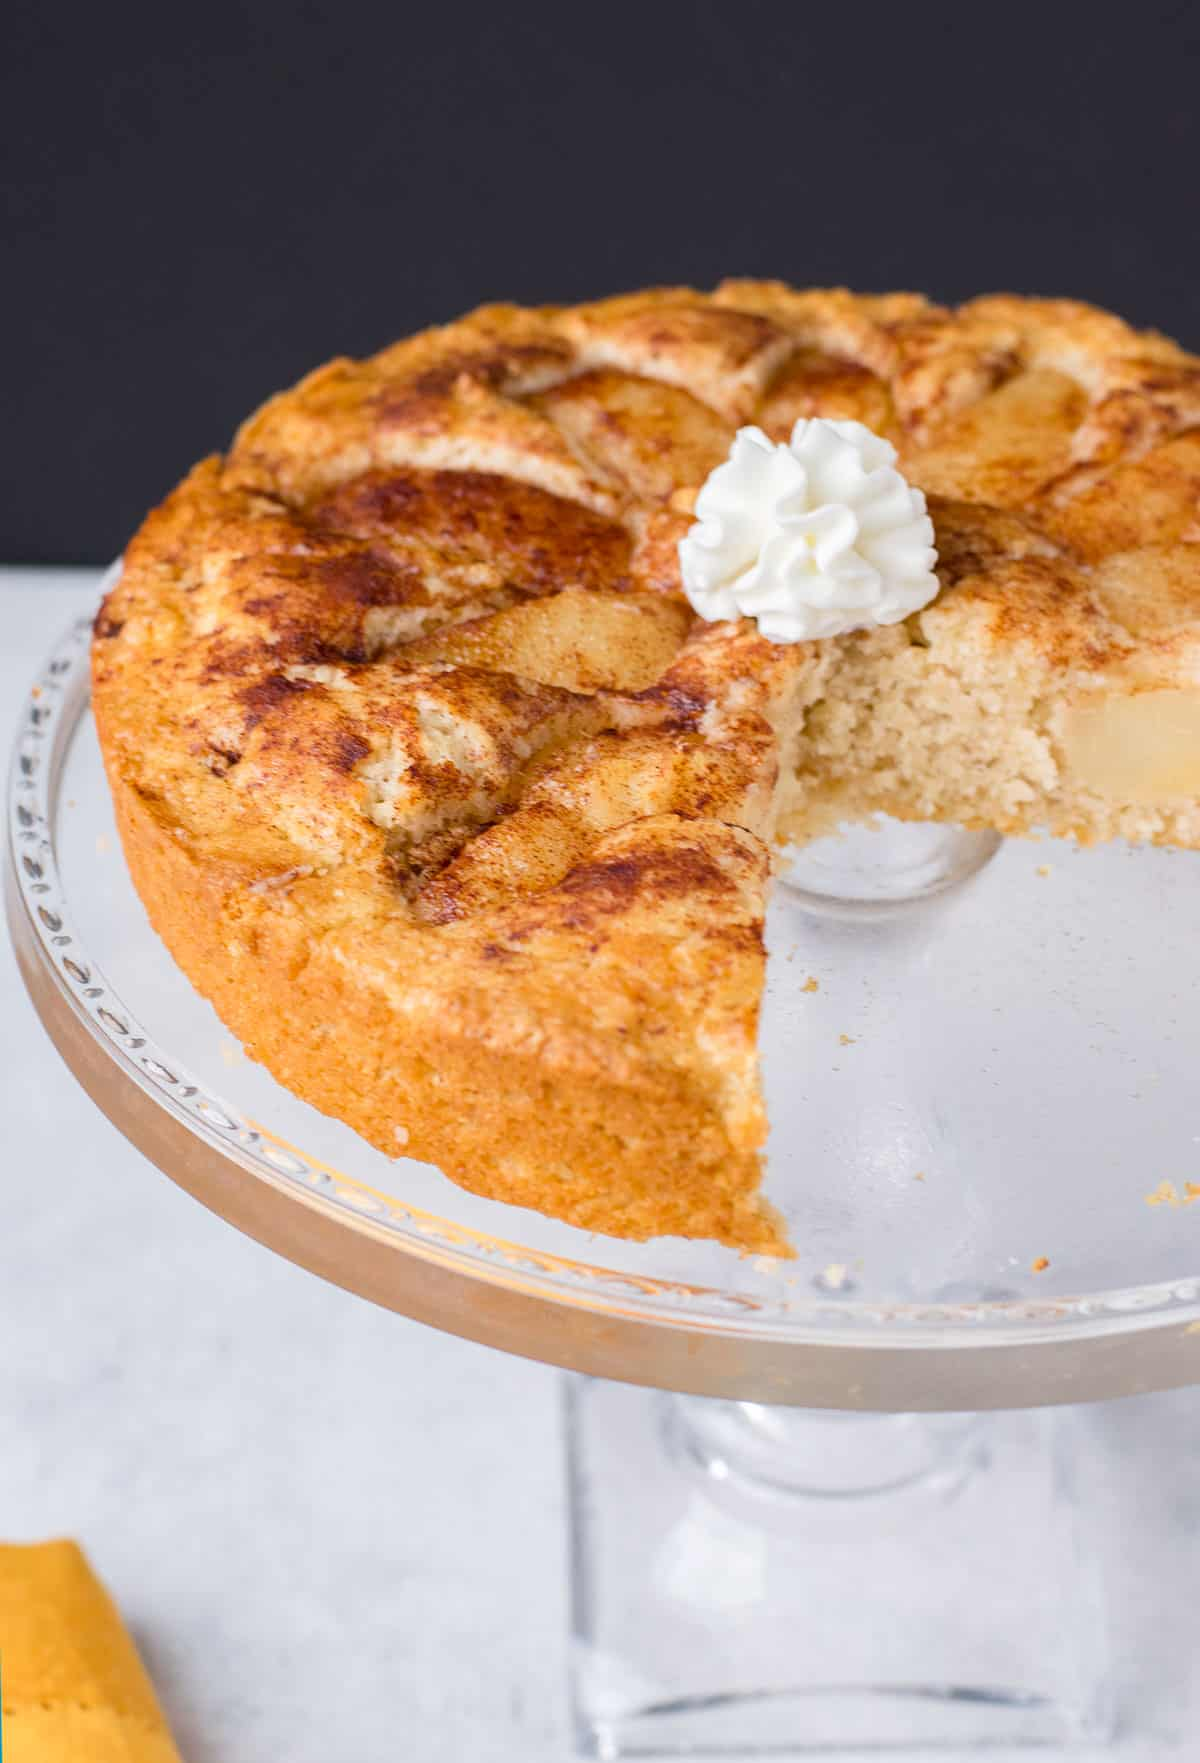 pear cake with whipped cream on glass cake stand